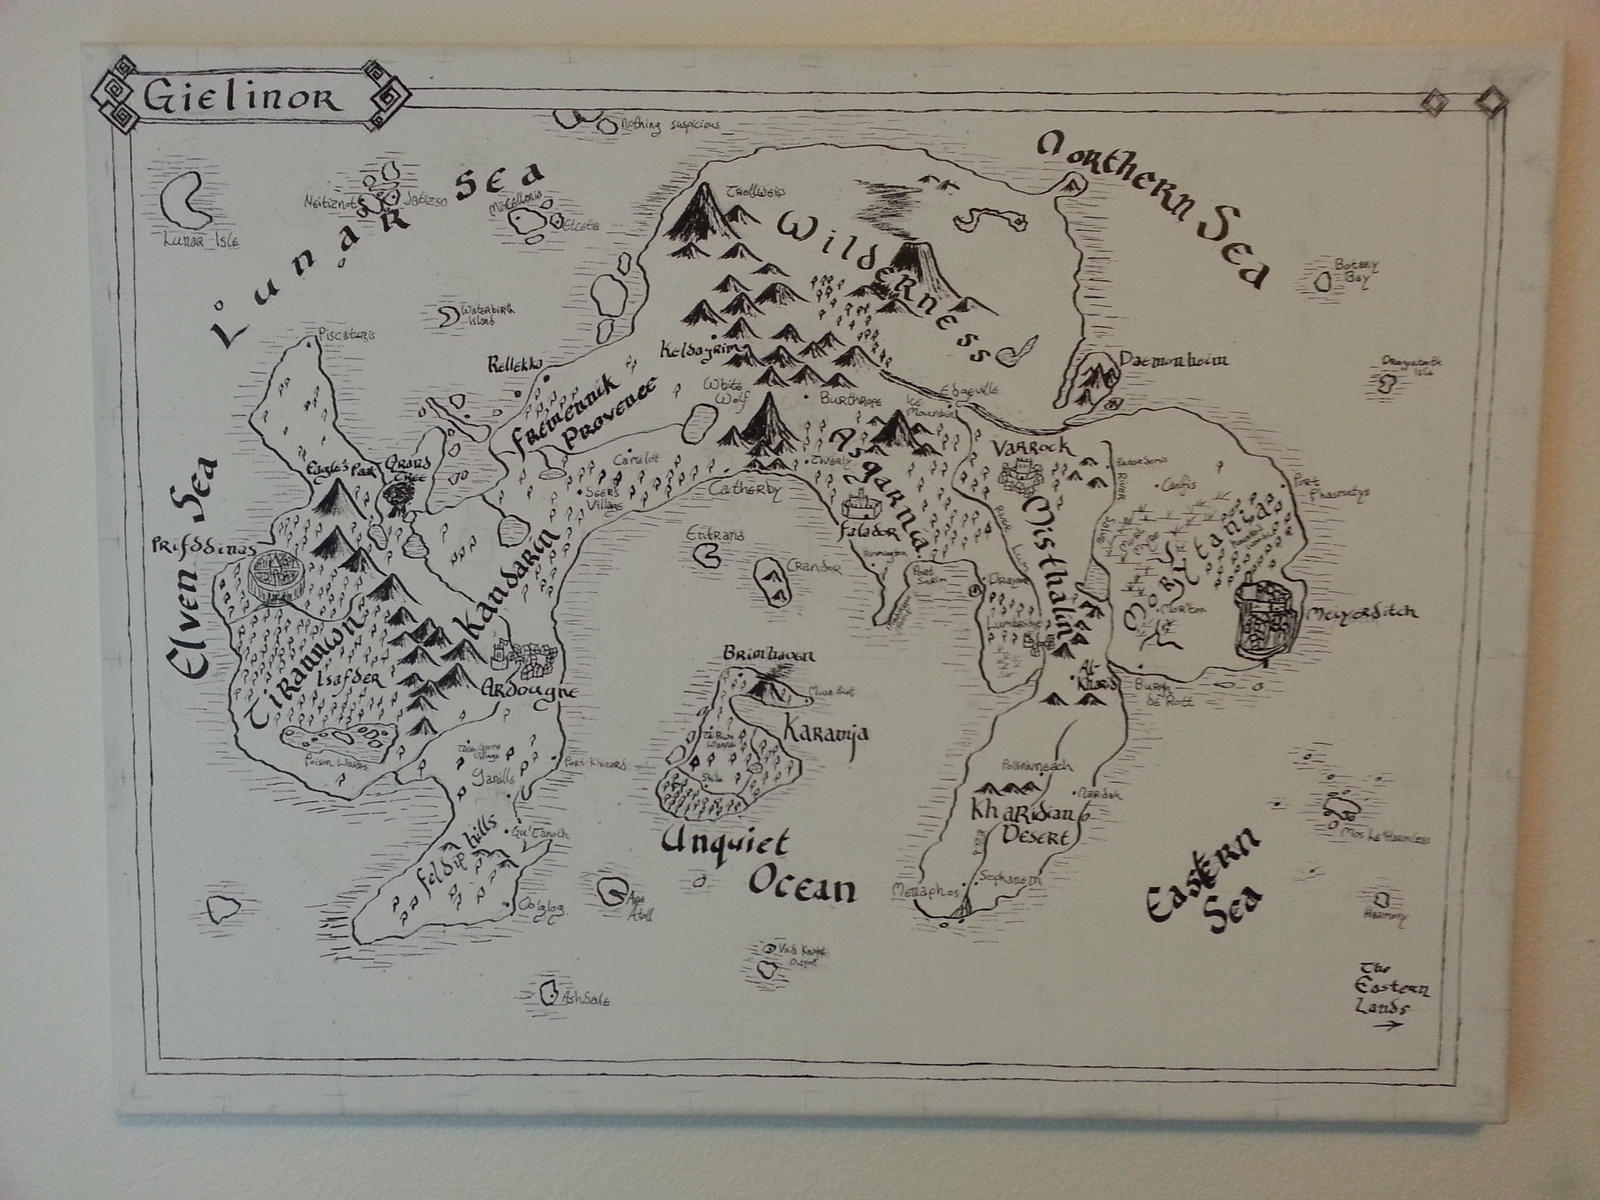 Map Of Gielinor By LilyHaaronArt Map Of Gielinor By LilyHaaronArt